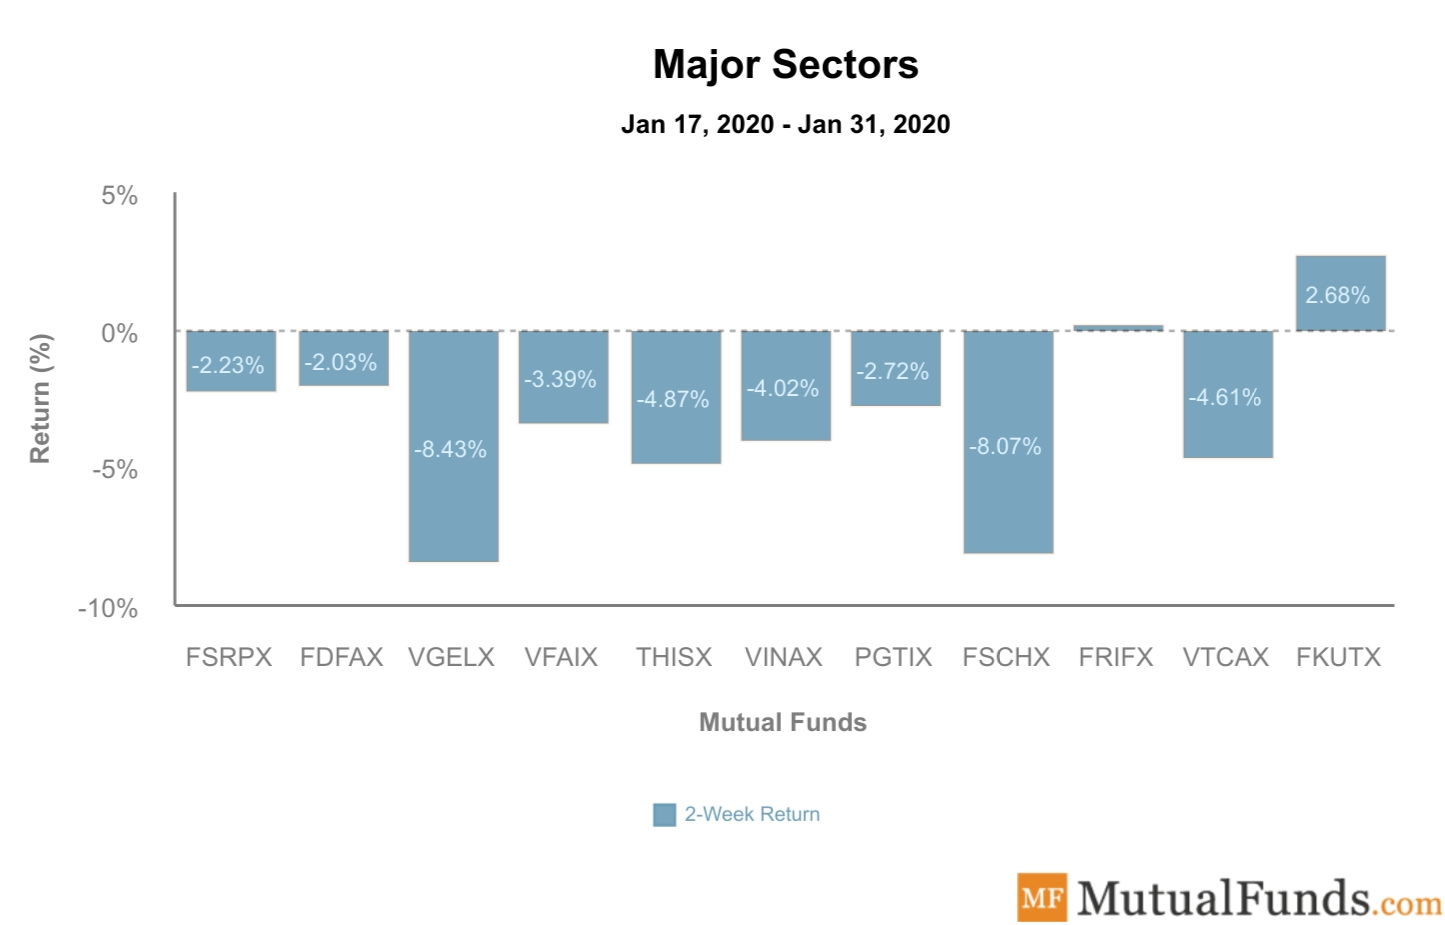 Major Sectors Performance February 4, 2020